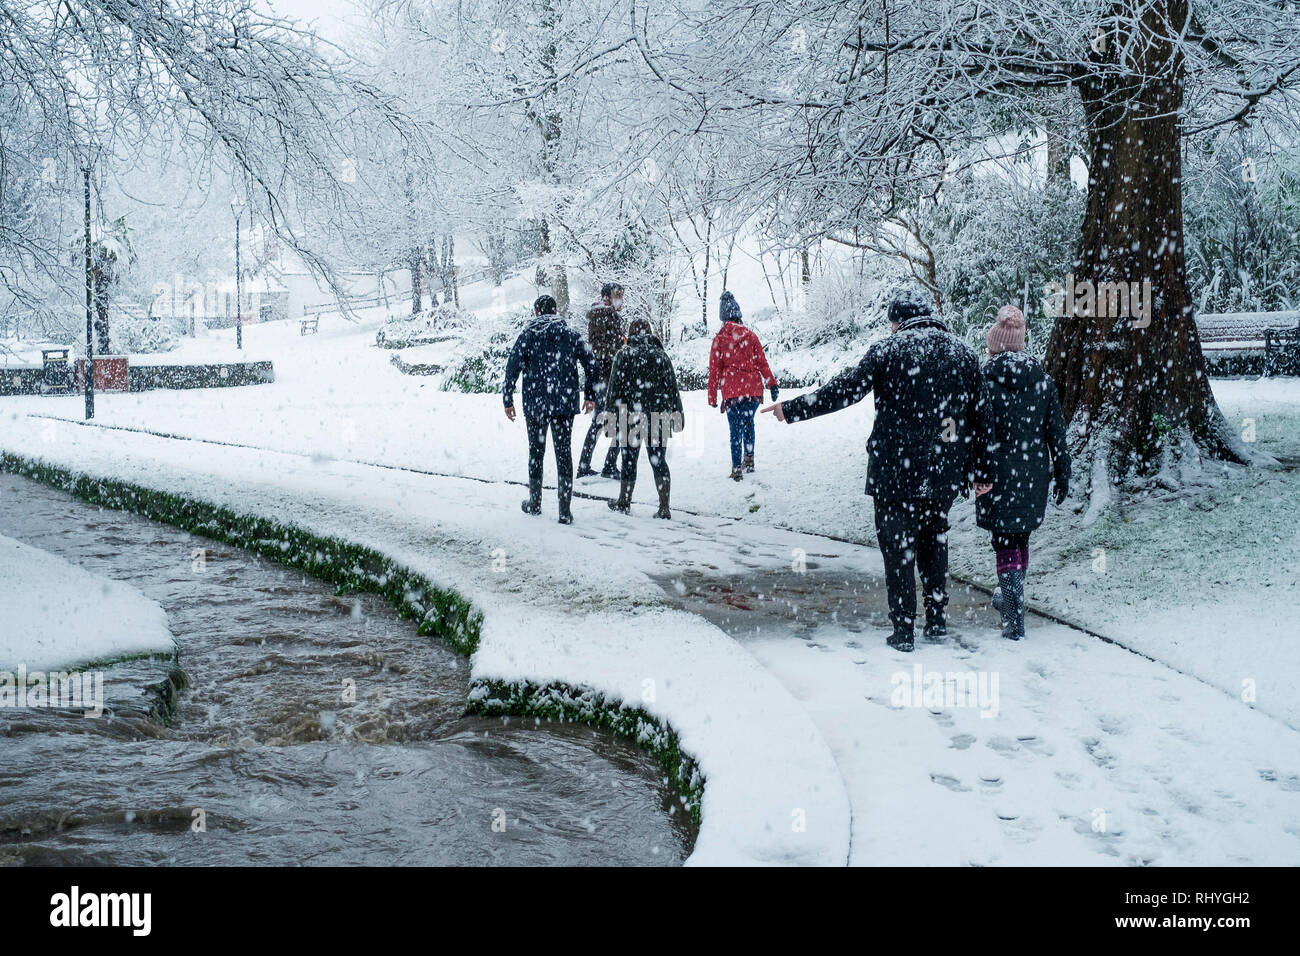 People enjoying walking through heavy snowfall in Trenance Park in Newquay in Cornwall. - Stock Image